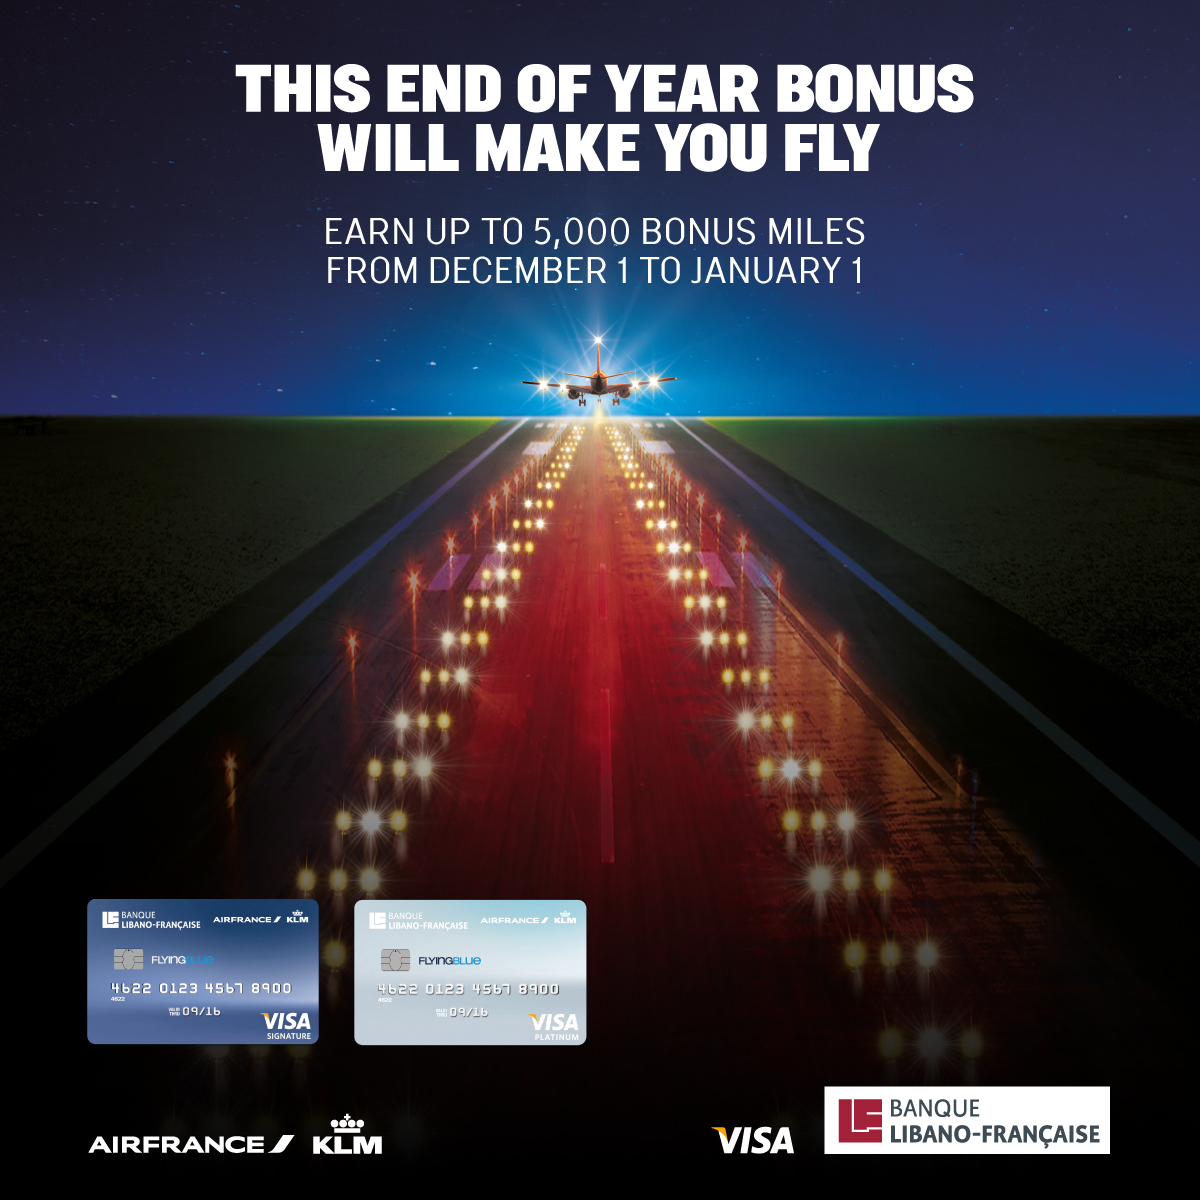 This end of year bonus will make you fly